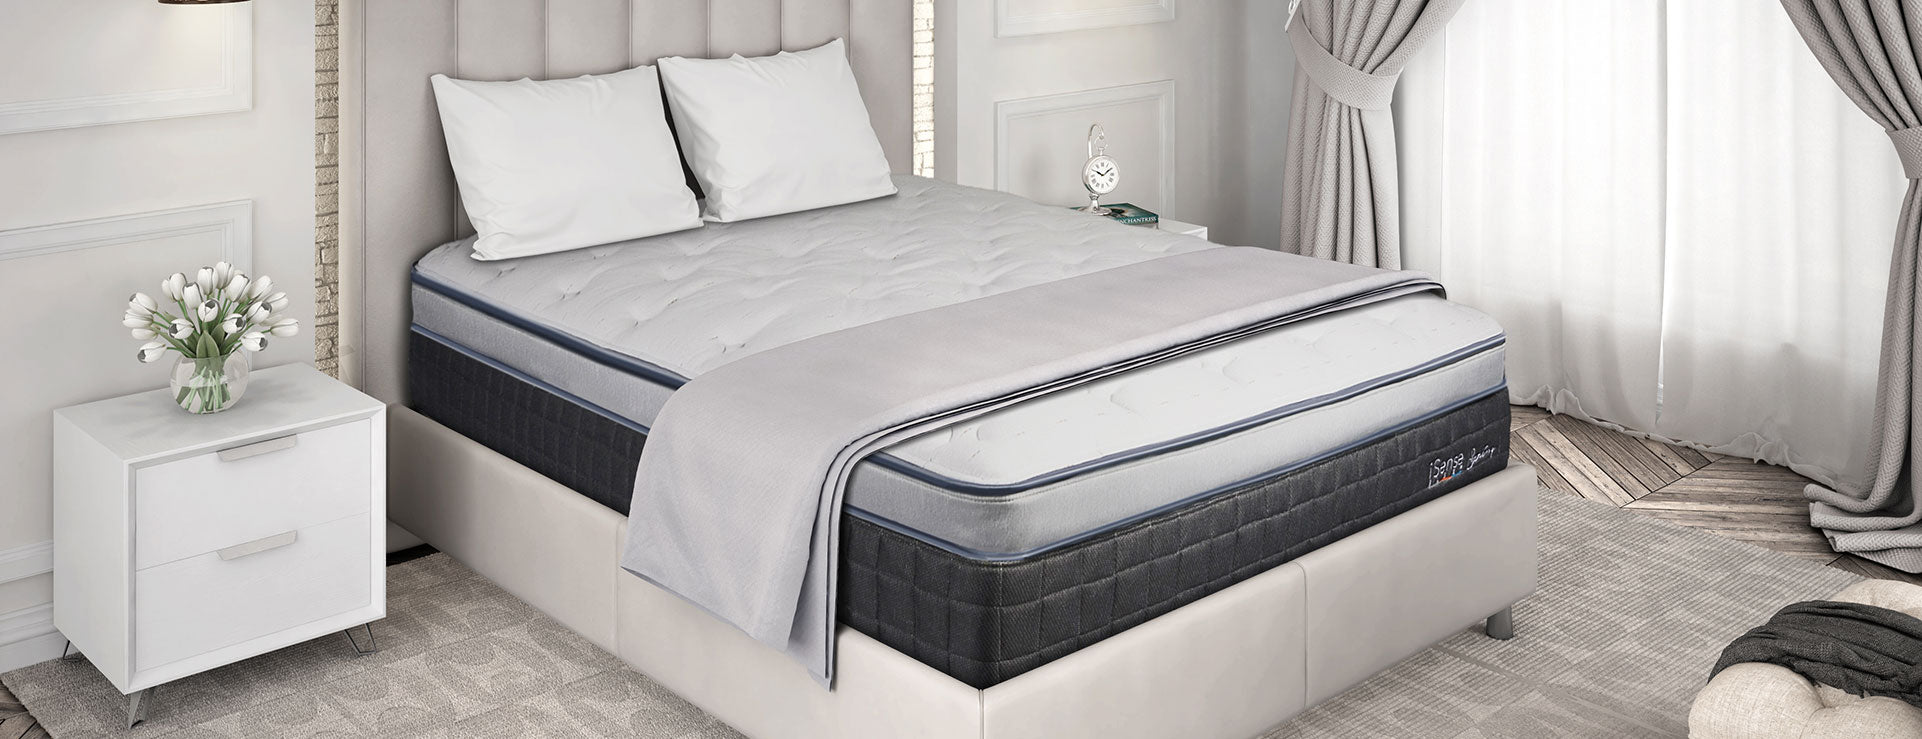 COMFORT CONTROL Spring Mattress - California King